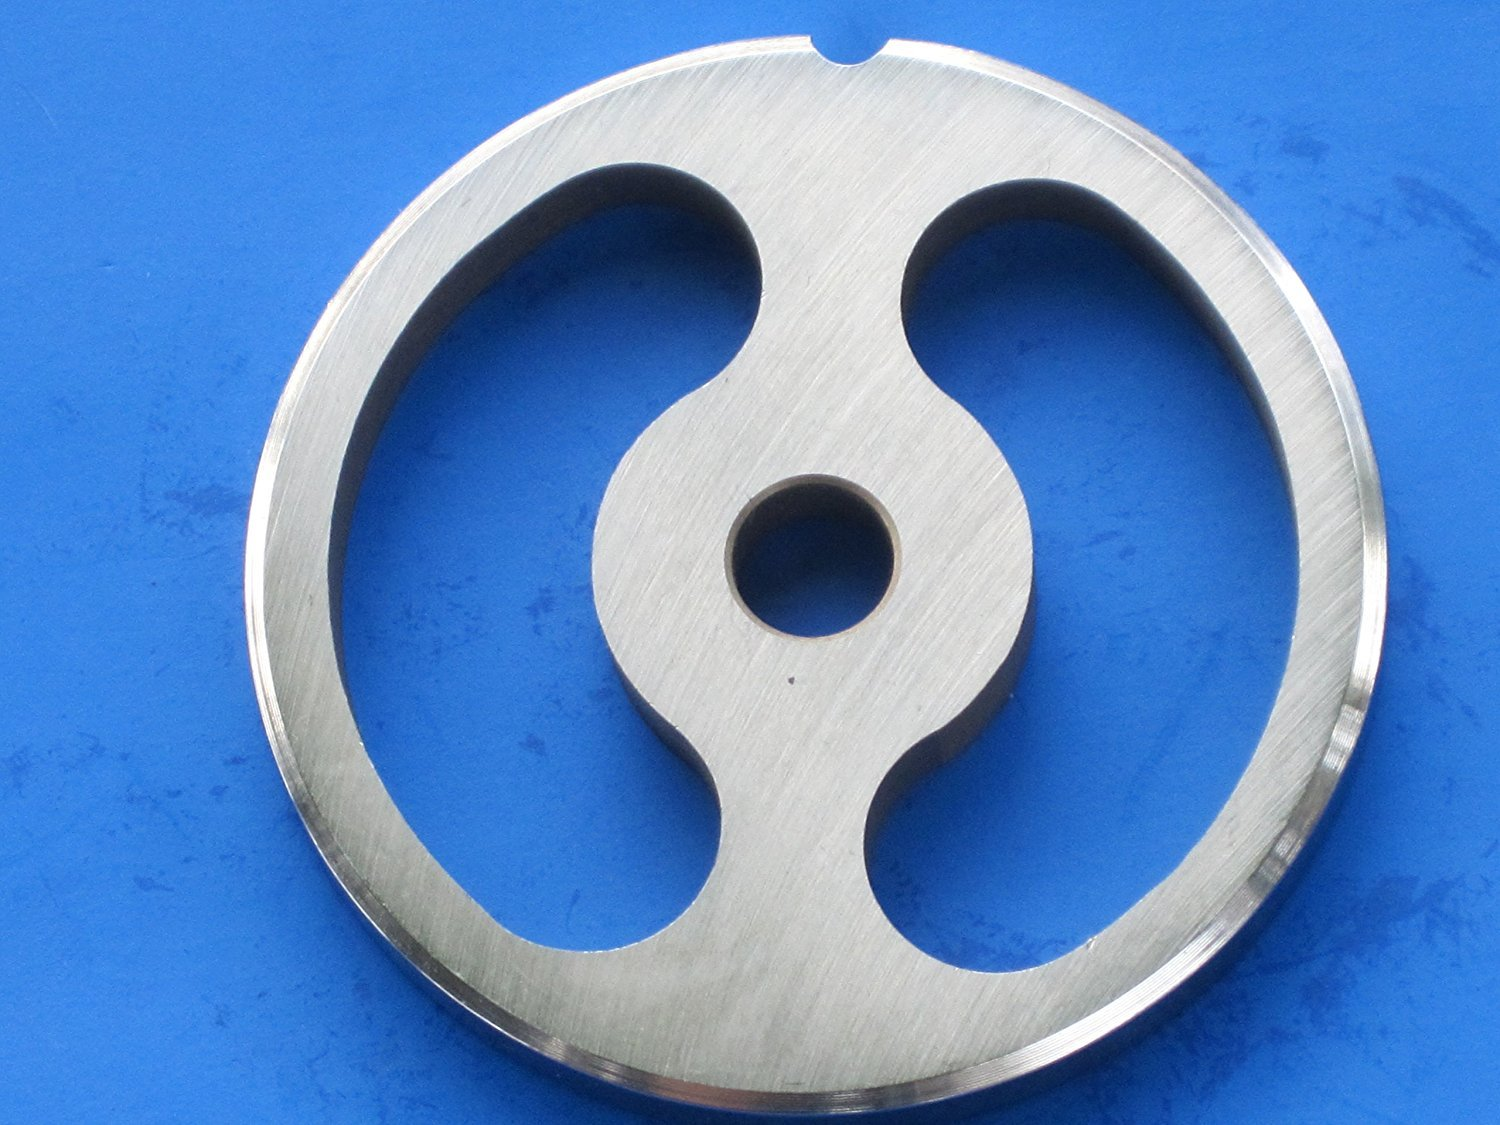 #12 size Kidney shaped Sausage Stuffing plate for Hobart, LEM, Cabelas, TorRey, MTN Meat Grinders. Stainless steel disc = no rust! by Smokehouse Chef CECOMINHK02818